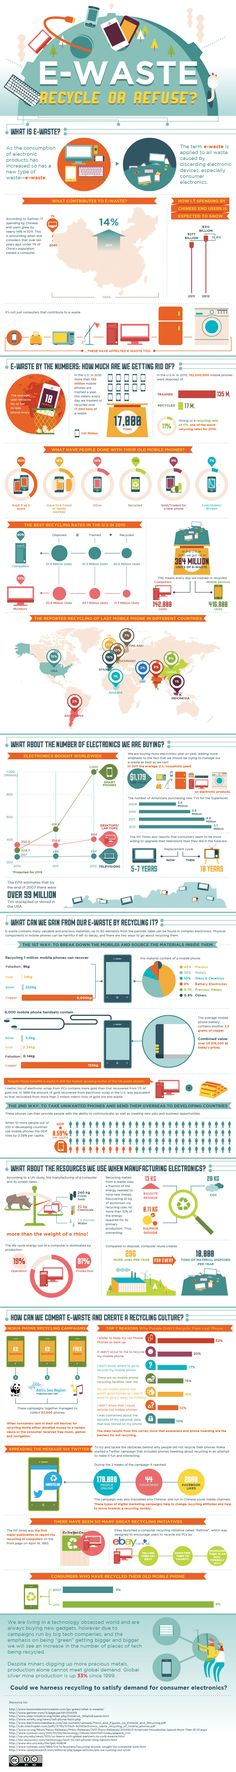 Visualizing The Worlds E-Waste Problem | Co.Exist: World changing ideas and innovation